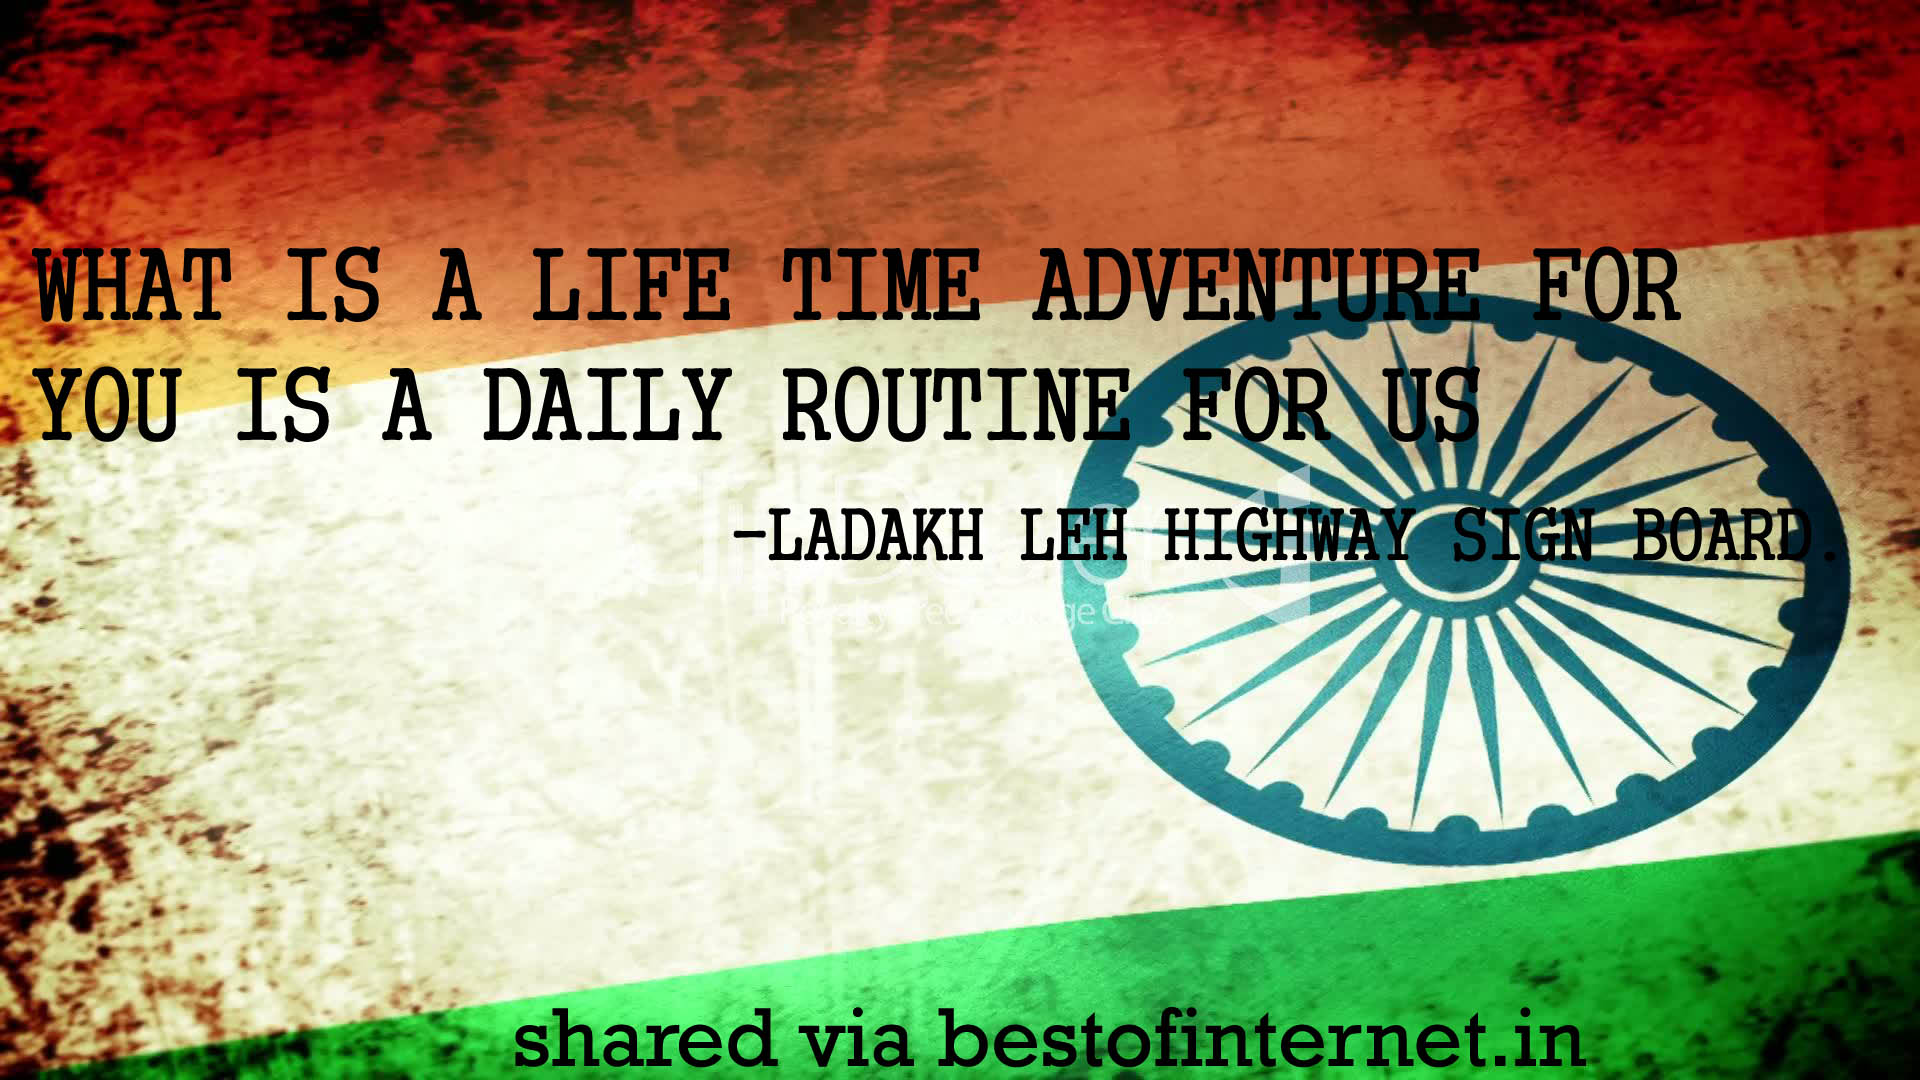 Inspirational Quotes Life Wallpapers Desktop Download Indian Army Quotes Wallpapers Hd Gallery